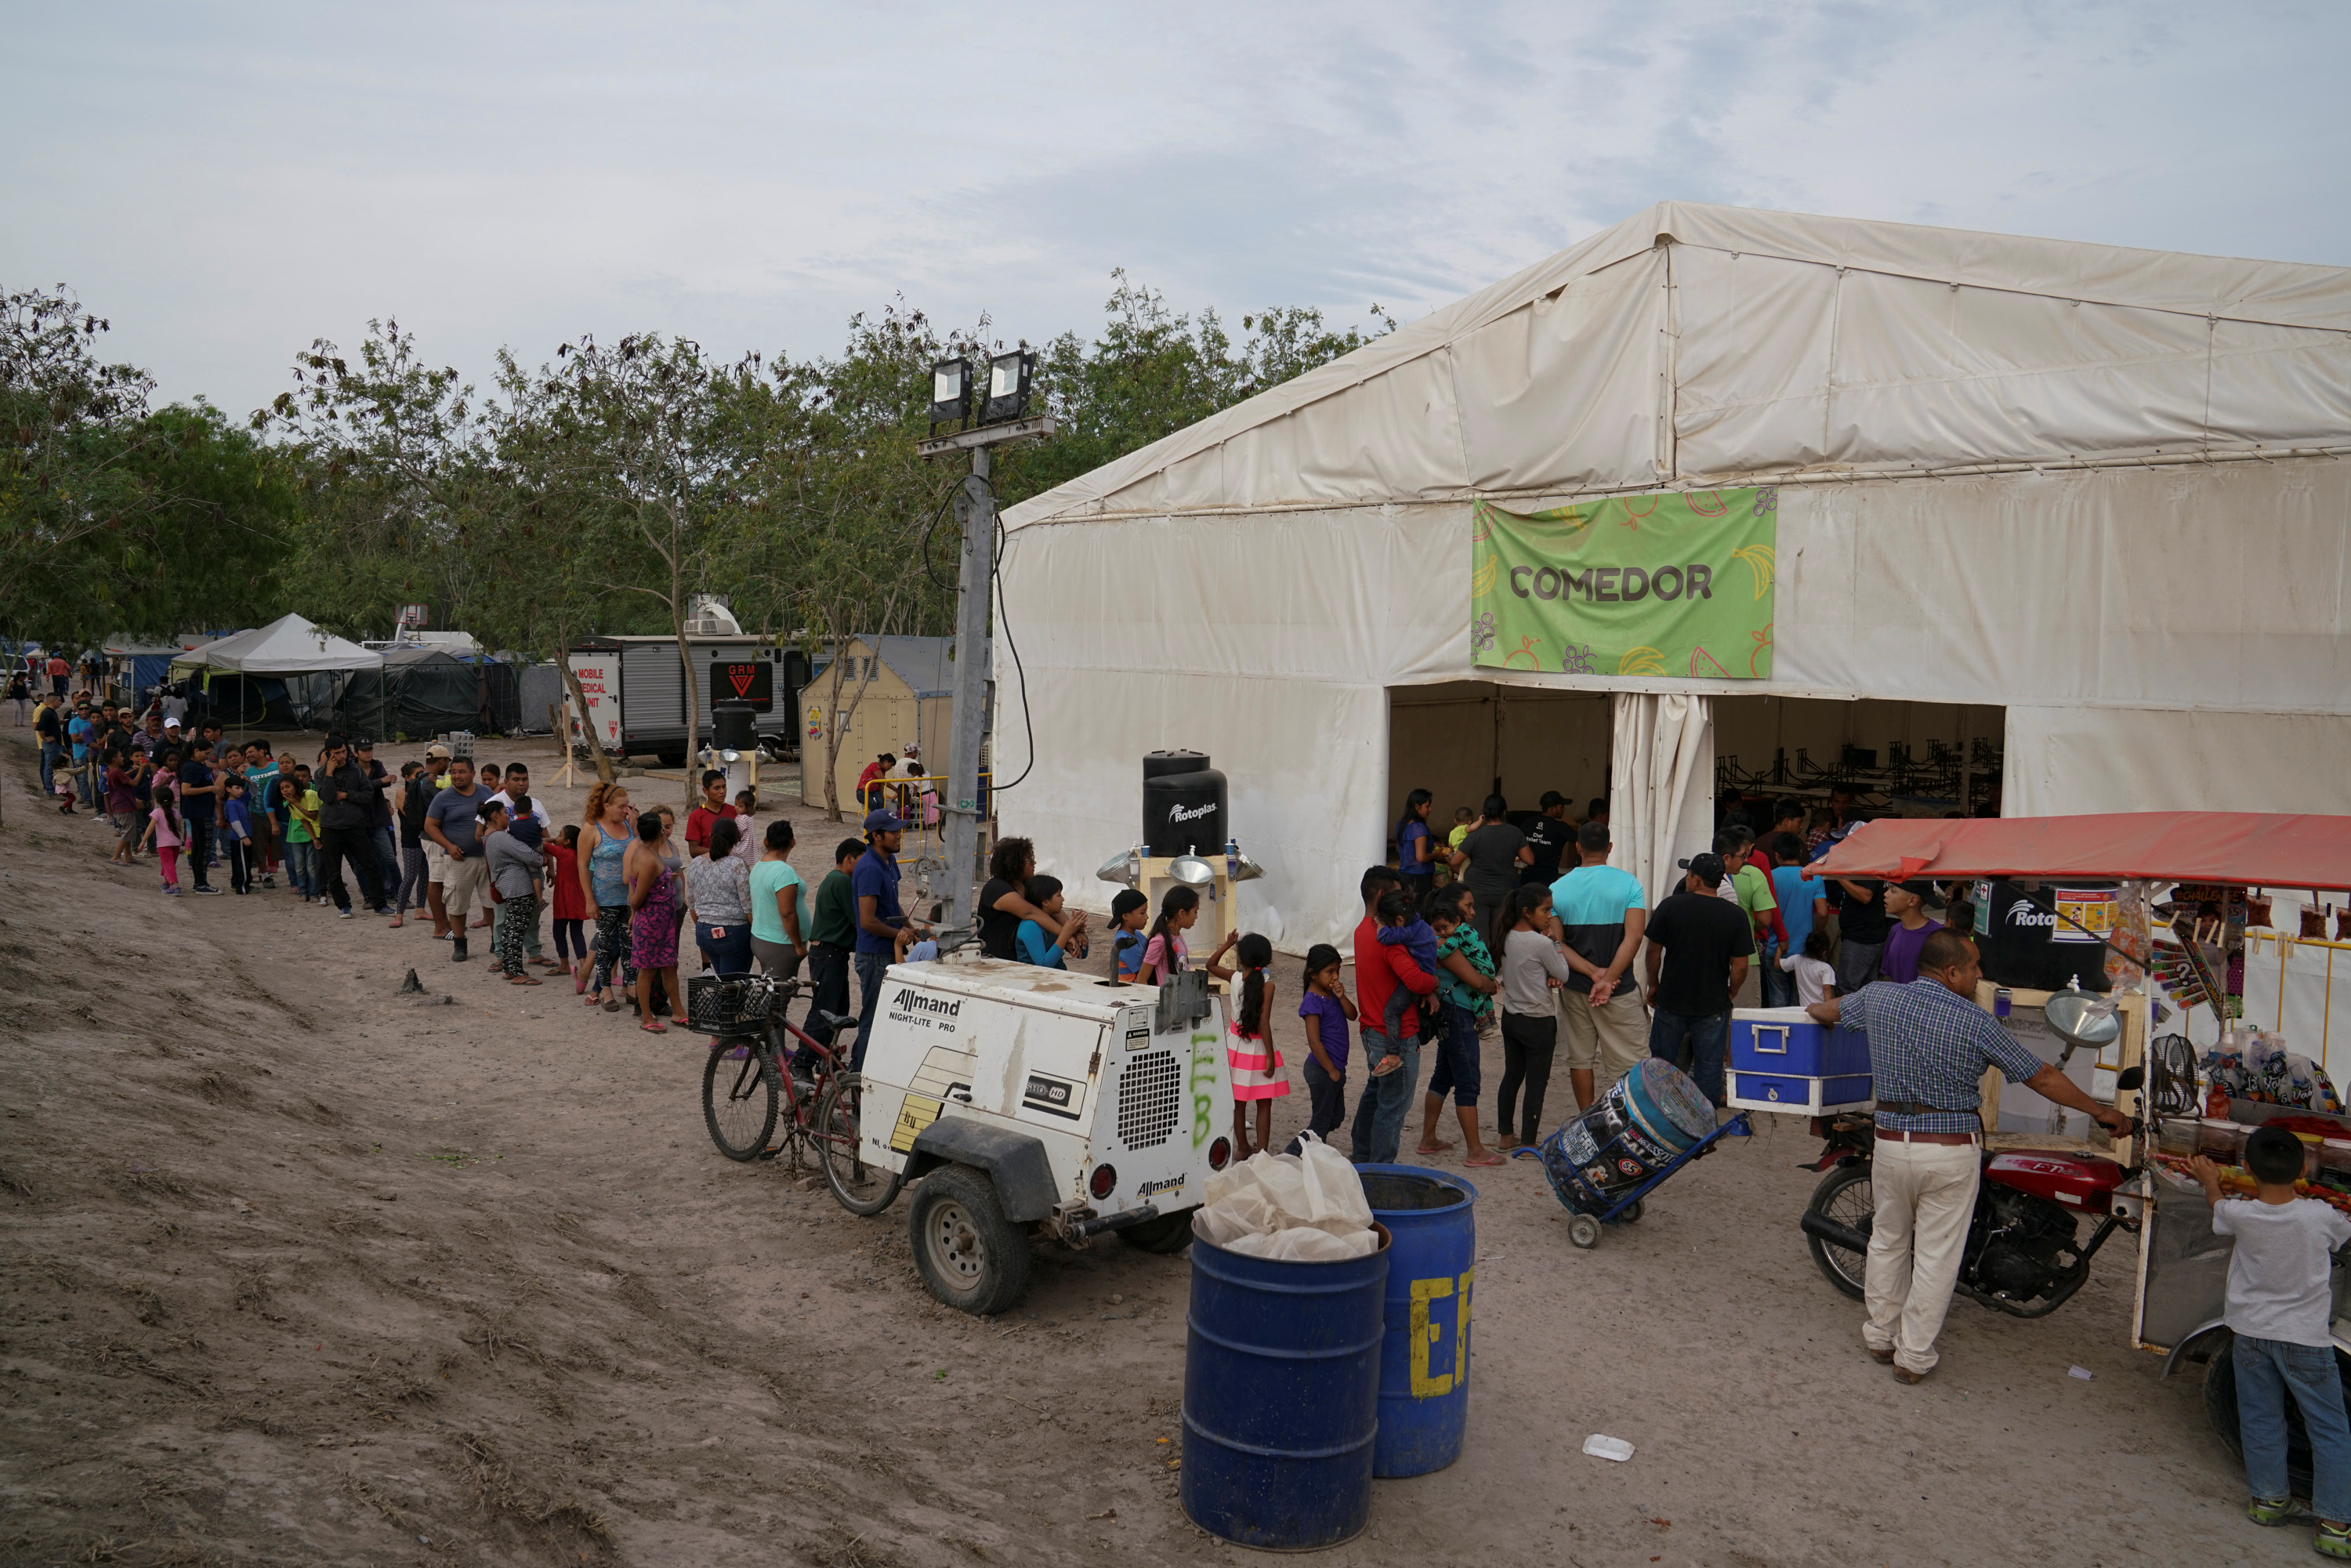 People wait in line for a meal at the Matamoros migrant encampment.